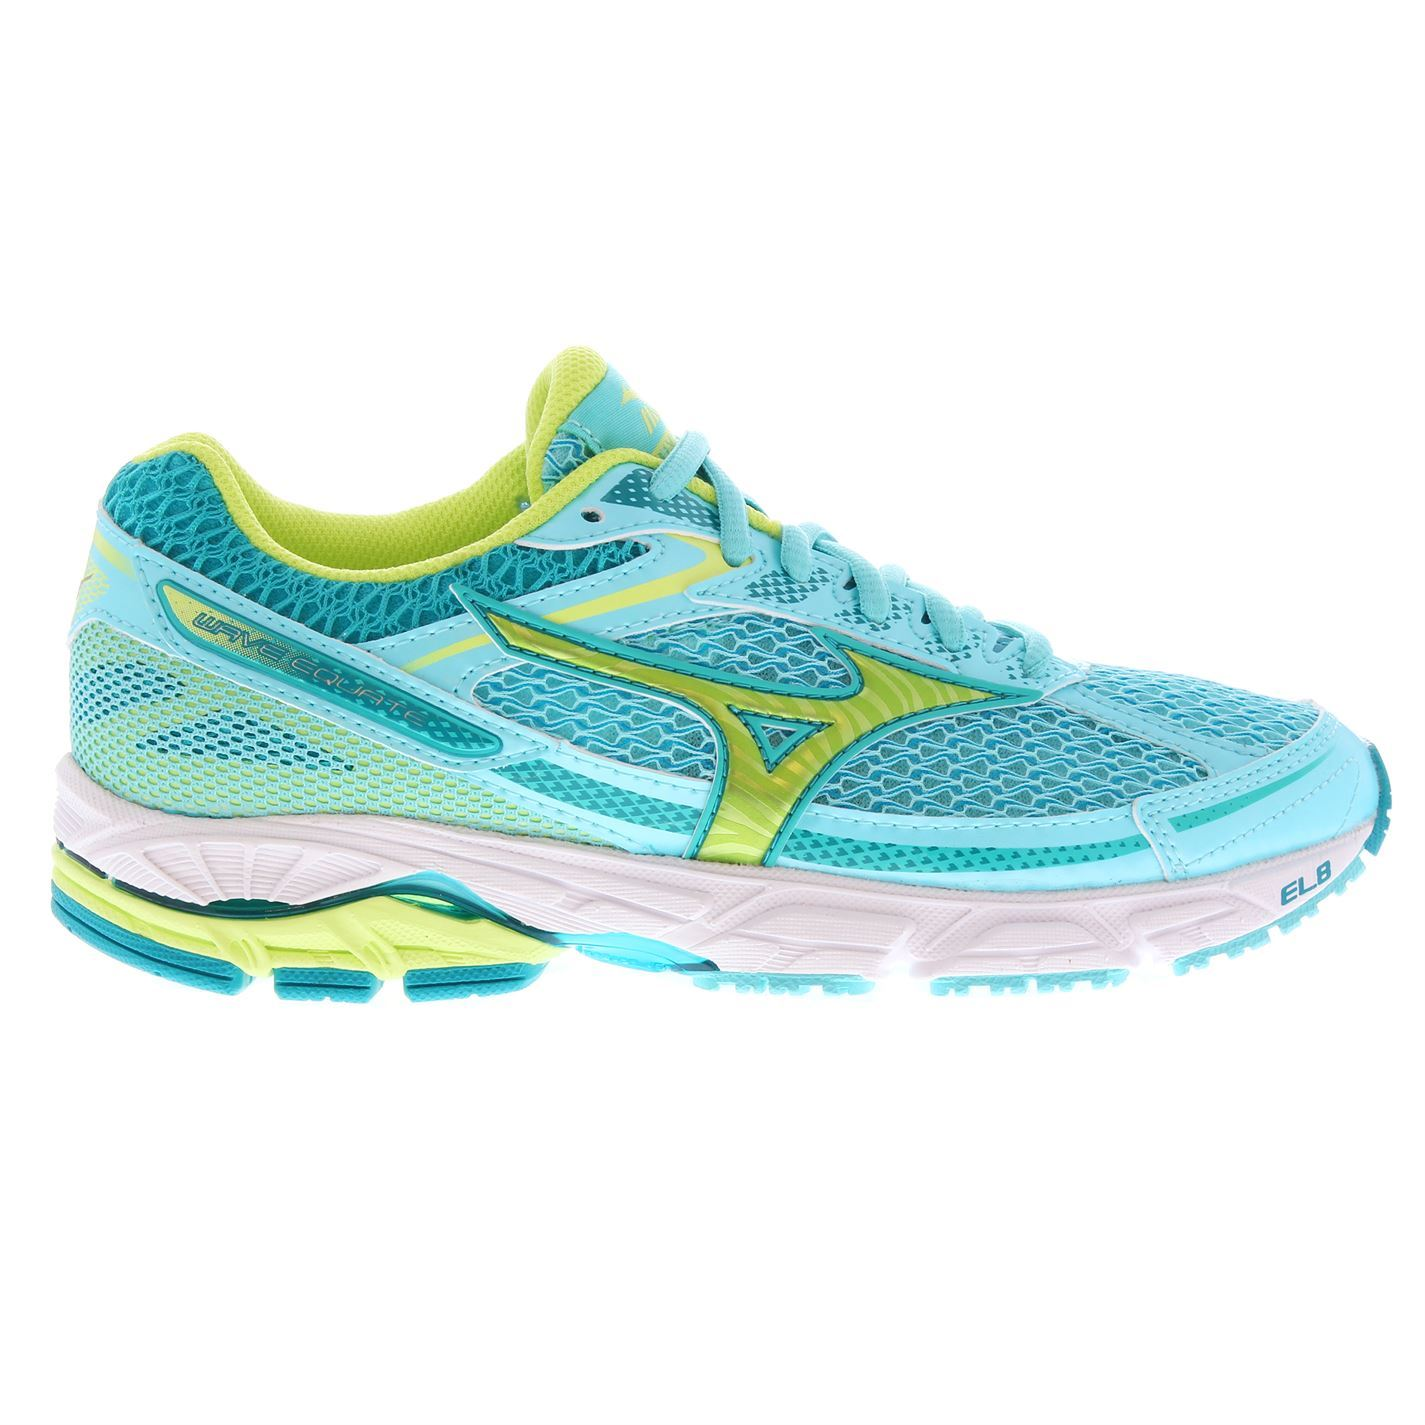 Mizuno Damenschuhe Wave Equate Running Running Equate Schuhes Road Breathable Mesh Upper bd93c9